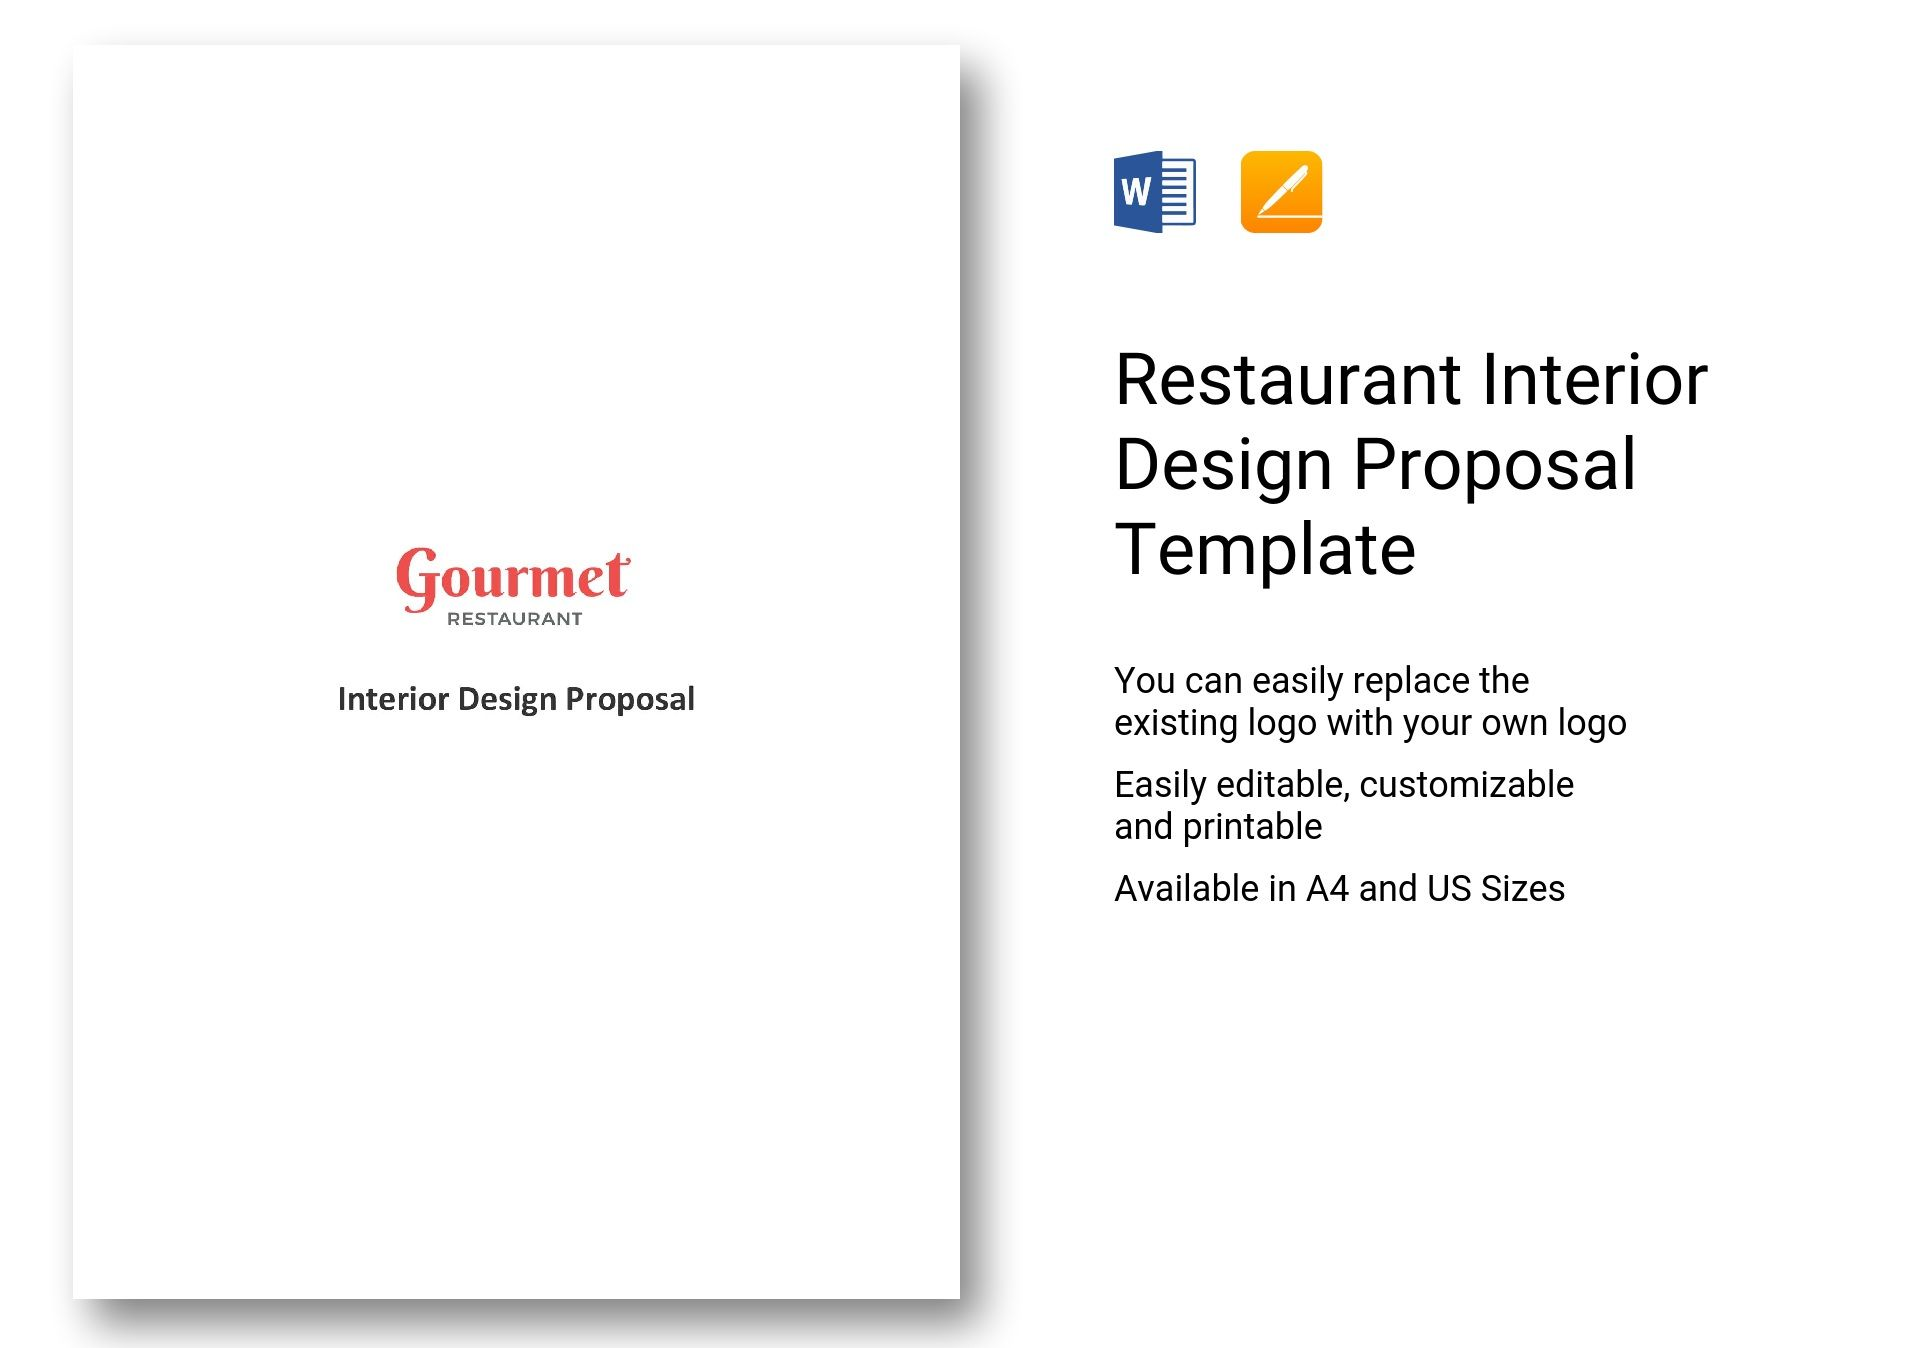 Restaurant interior design proposal template in word